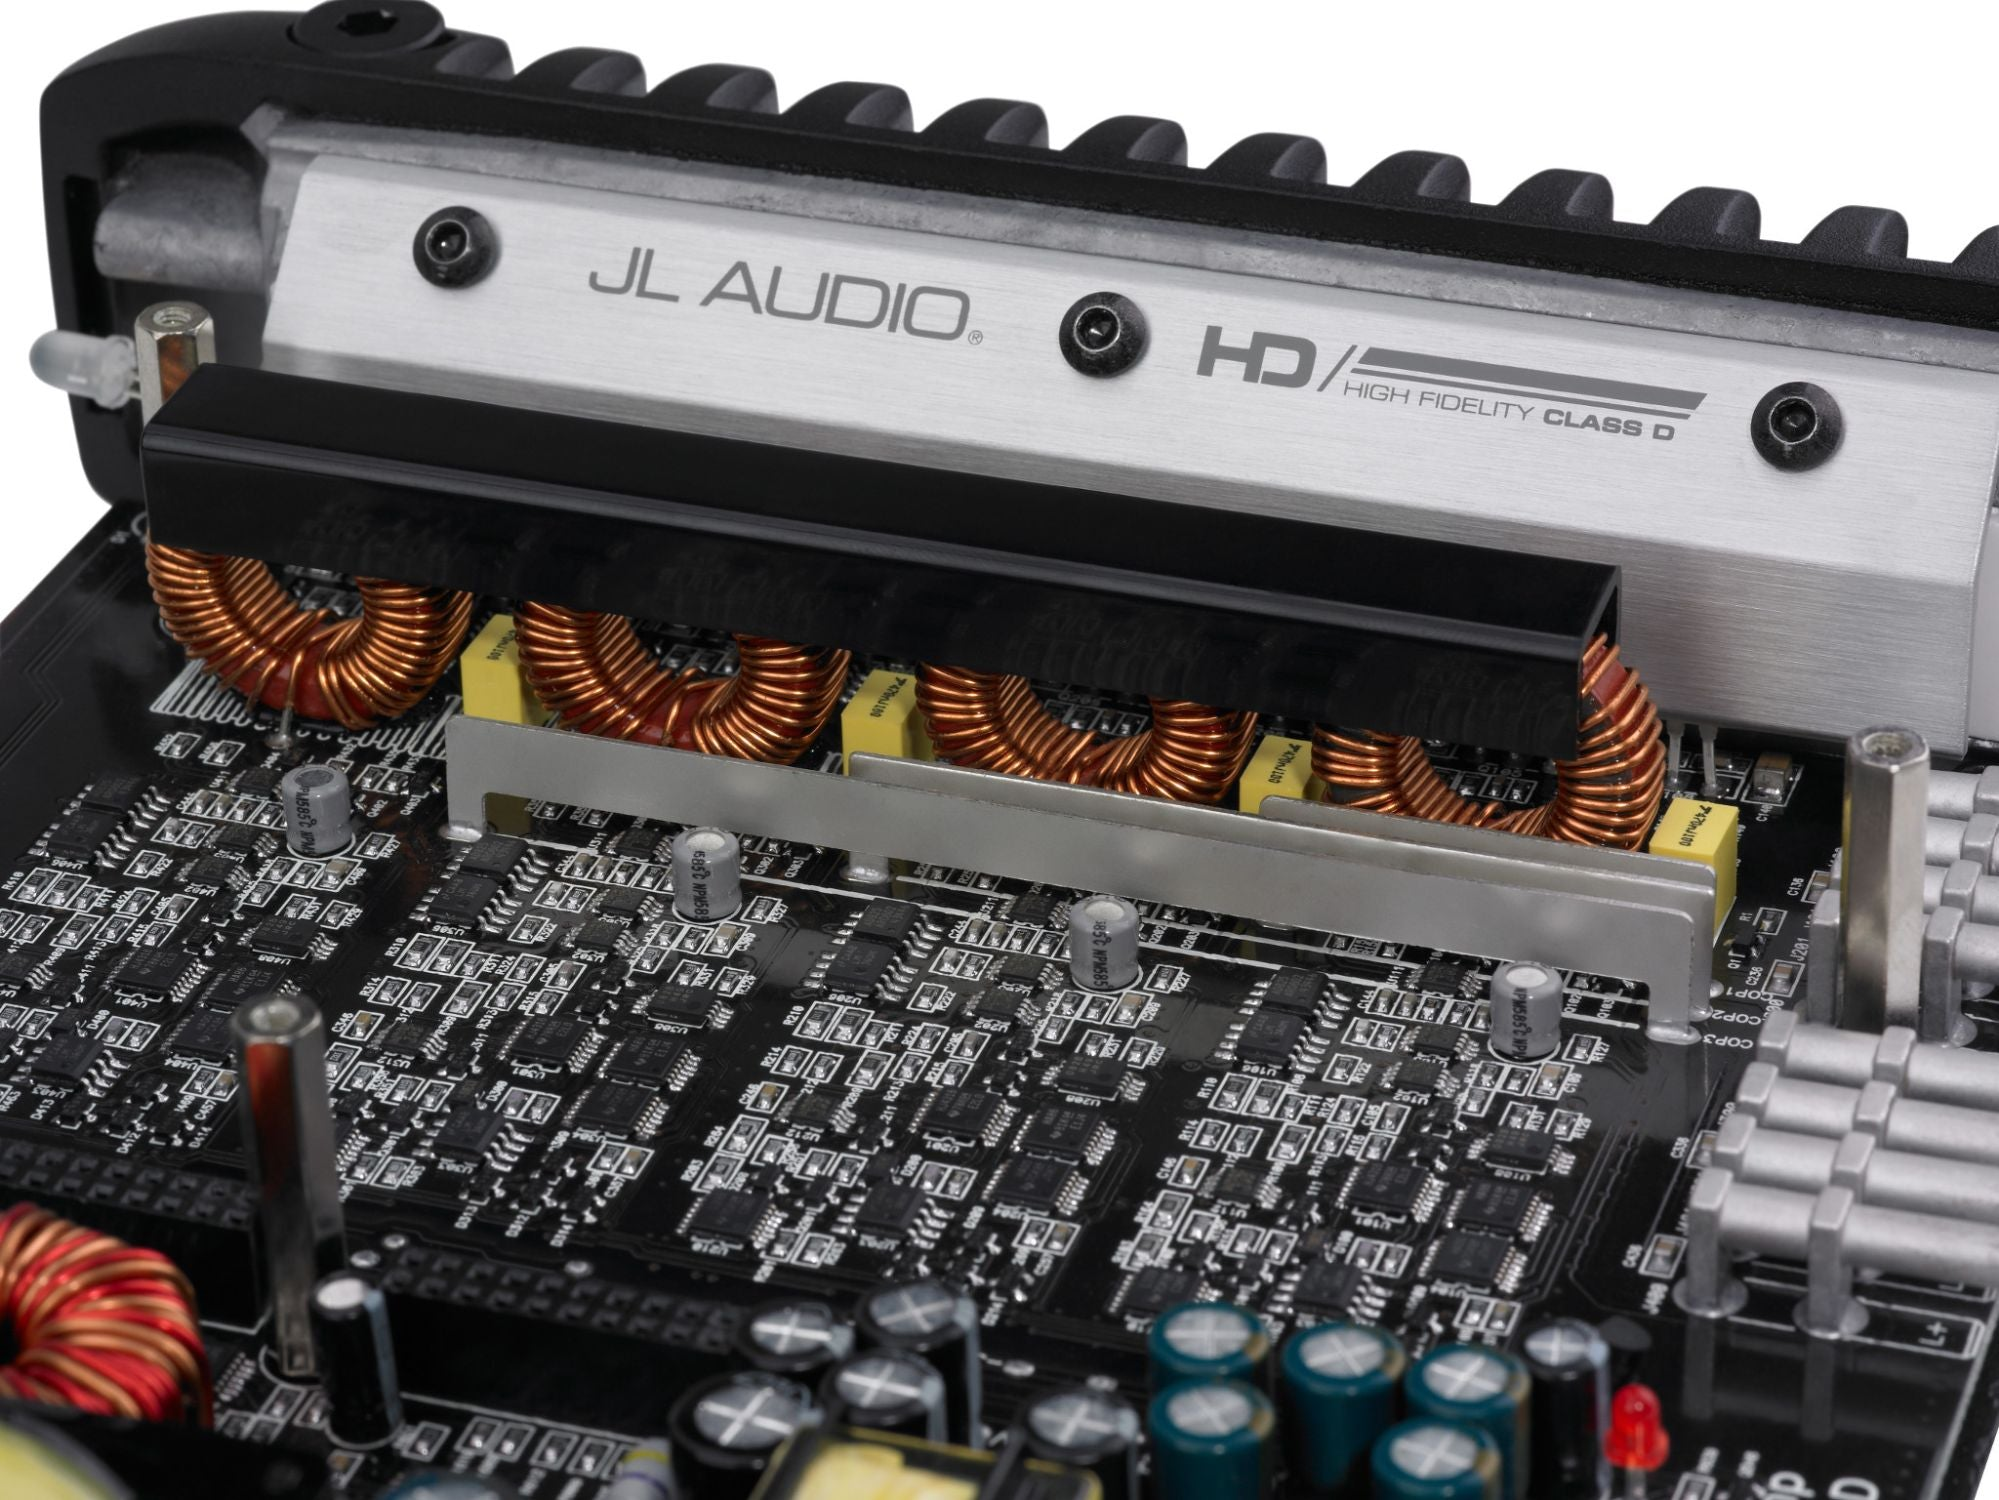 Detail of HD600/4 Amplifier Internals and Heatsink